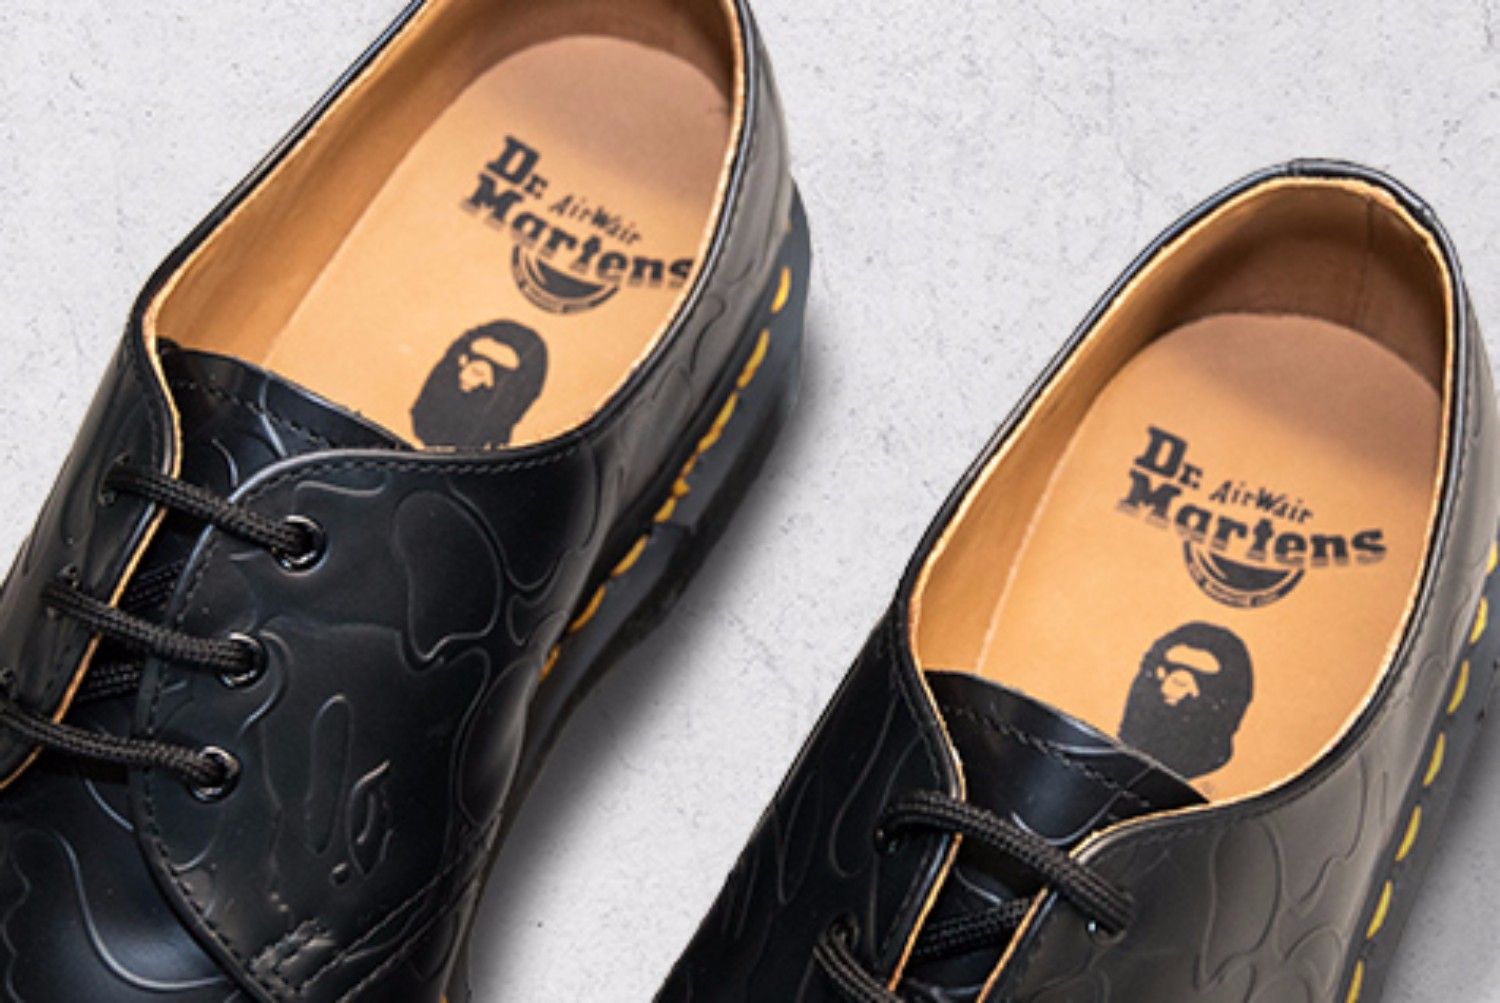 Get Your Hands On This BAPE x Dr. Martens Collaboration Right Now